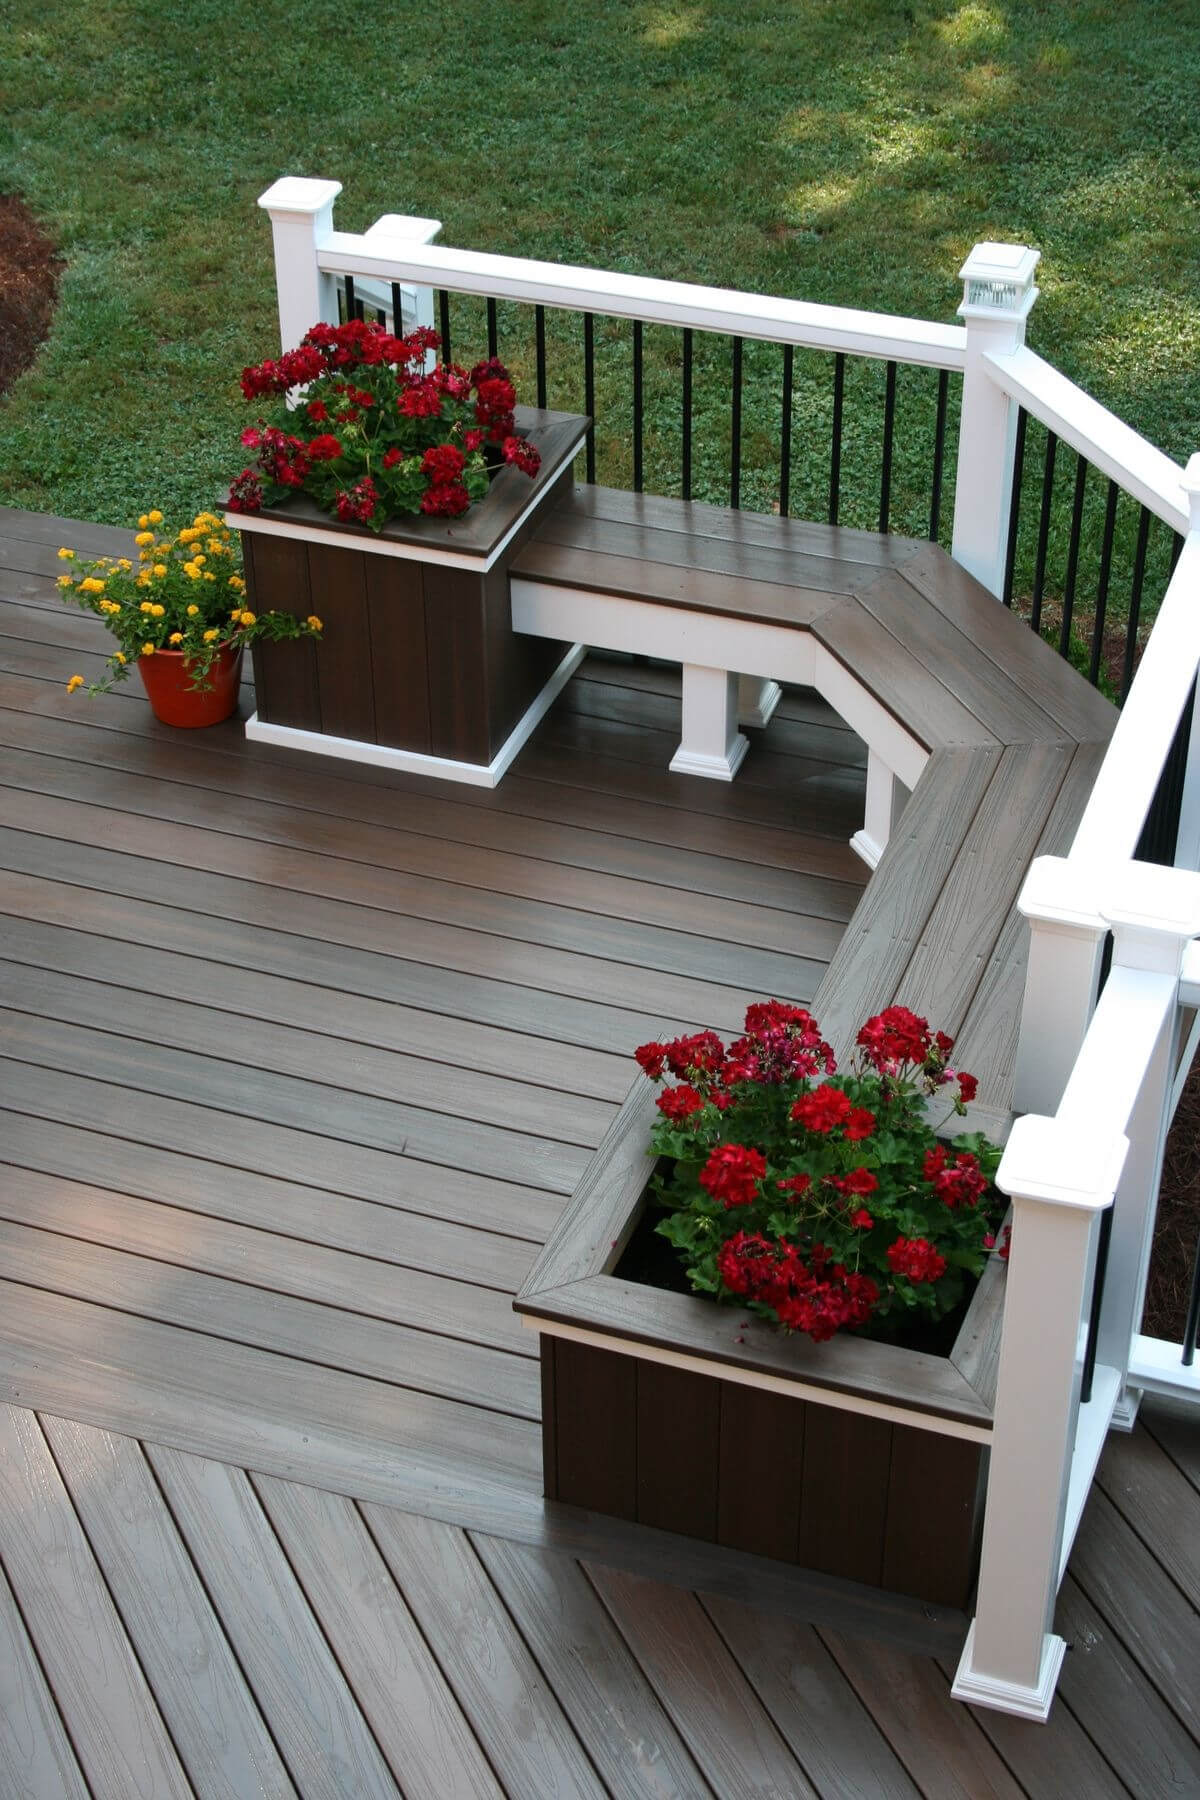 33 Best Built-In Planter Ideas and Designs for 2018 Planters Ideas on pillow ideas, plaque ideas, outdoor ideas, very cool science project ideas, retaining wall ideas, vase ideas, gardening ideas, truck ideas, white ideas, garden ideas, plate ideas, animal ideas, teapot ideas, lantern ideas, leather ideas, coffee table ideas, plant ideas, stand ideas, pot ideas, bird feeder ideas,